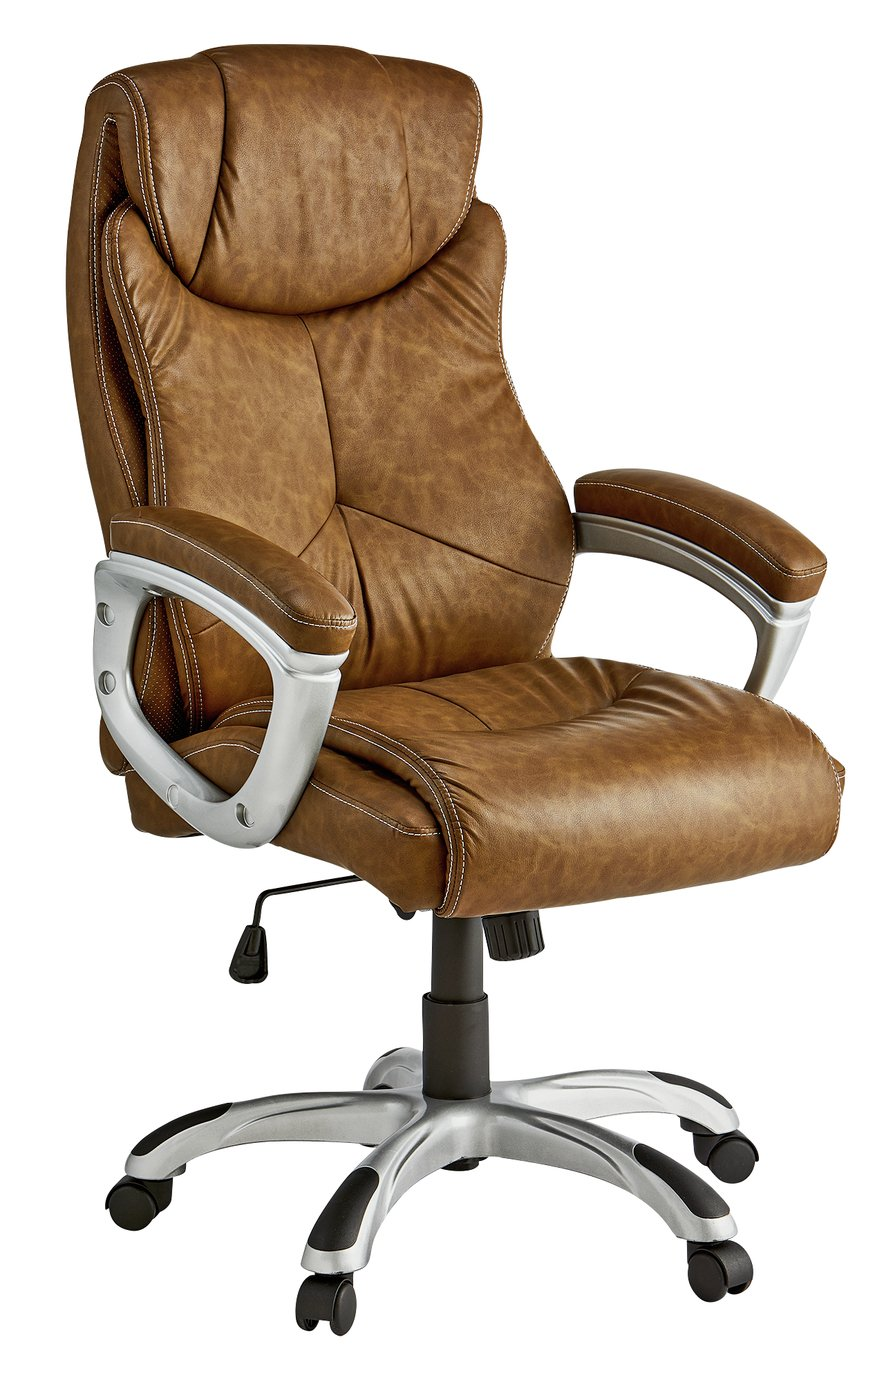 Superb X Rocker Executive Office Chair With Sound Brown 7544916 Uwap Interior Chair Design Uwaporg